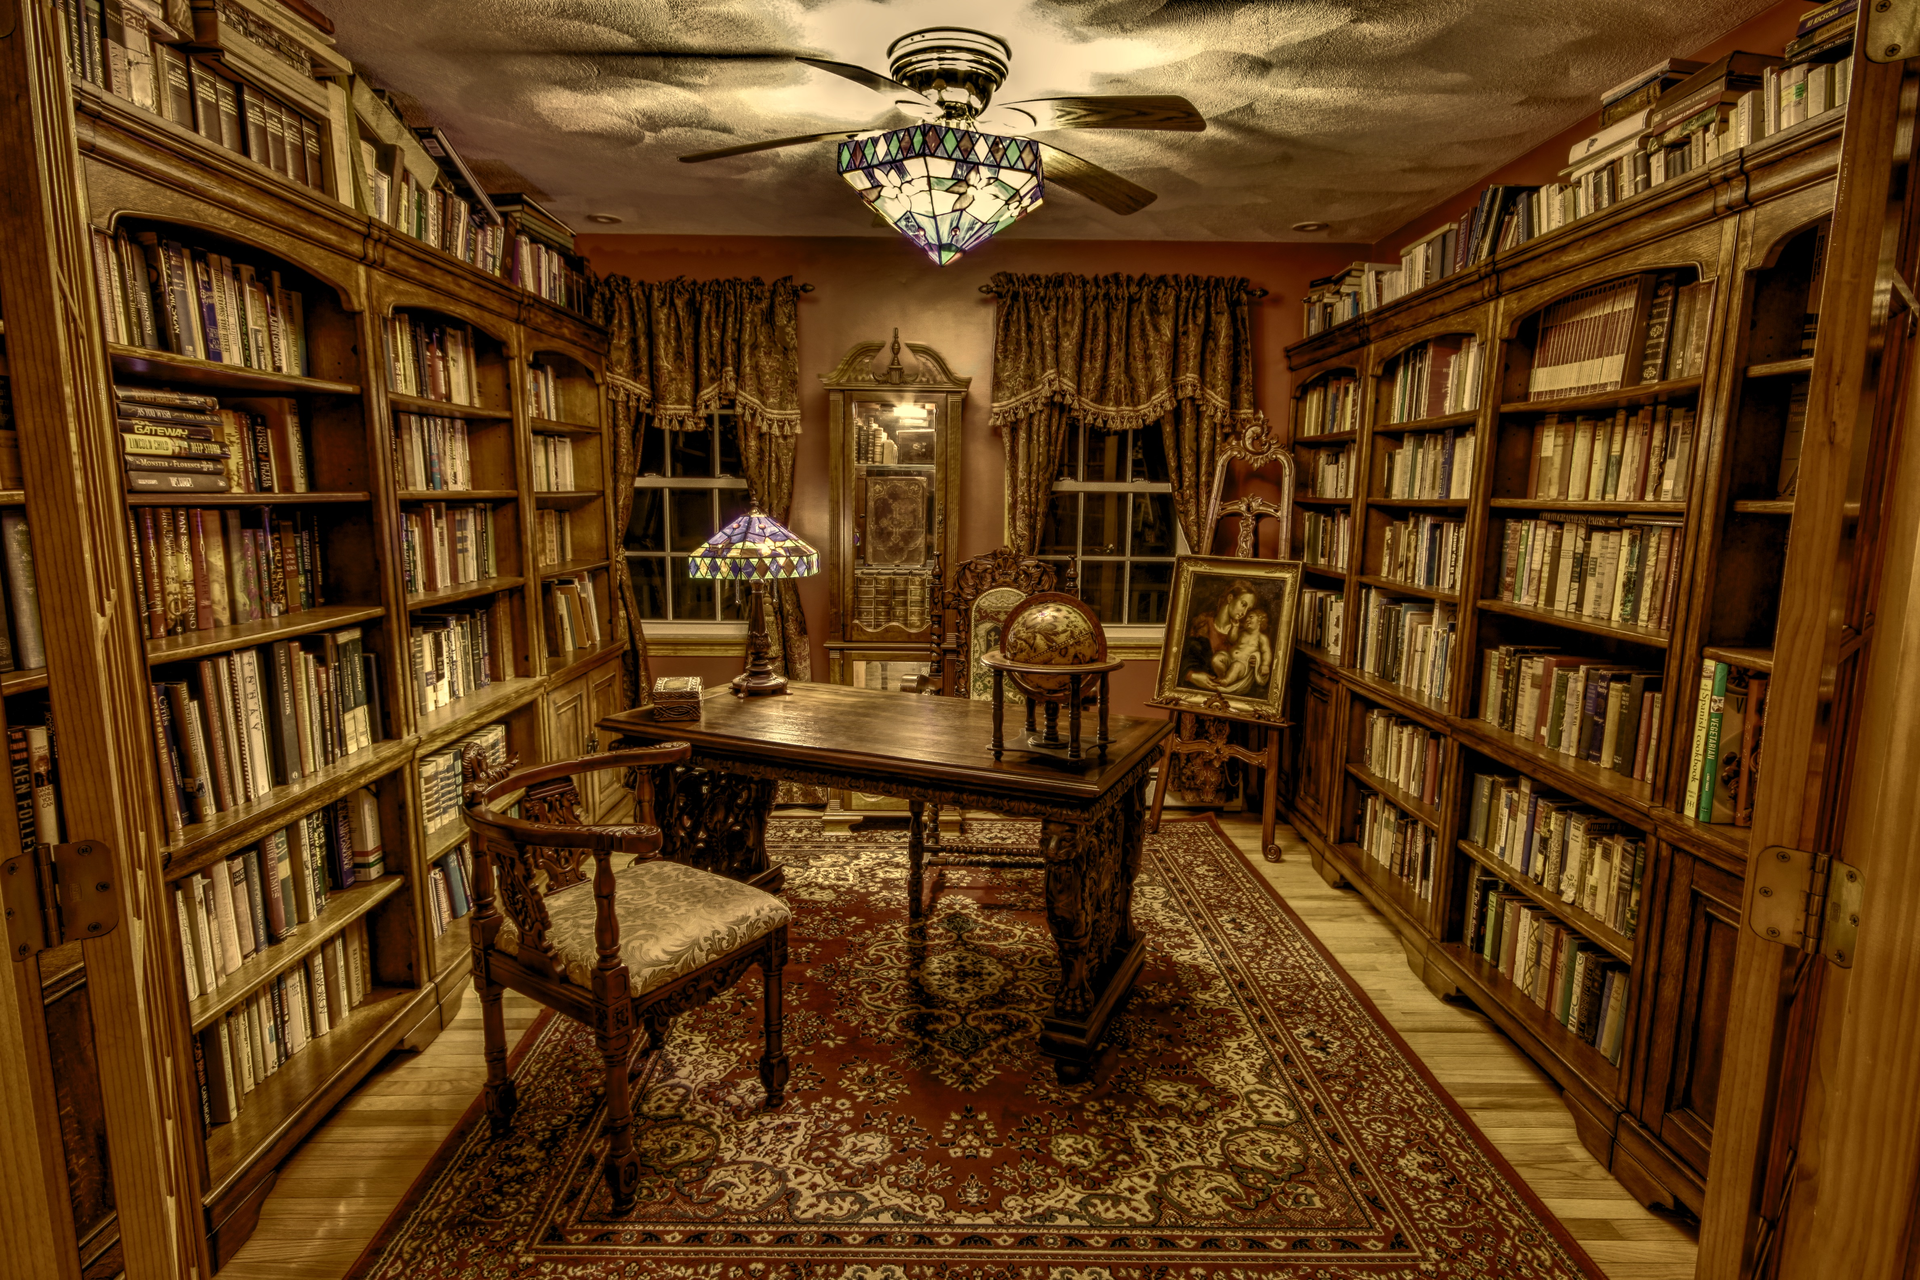 Library Room Ideas oc] my humble small library room, hdr version per request